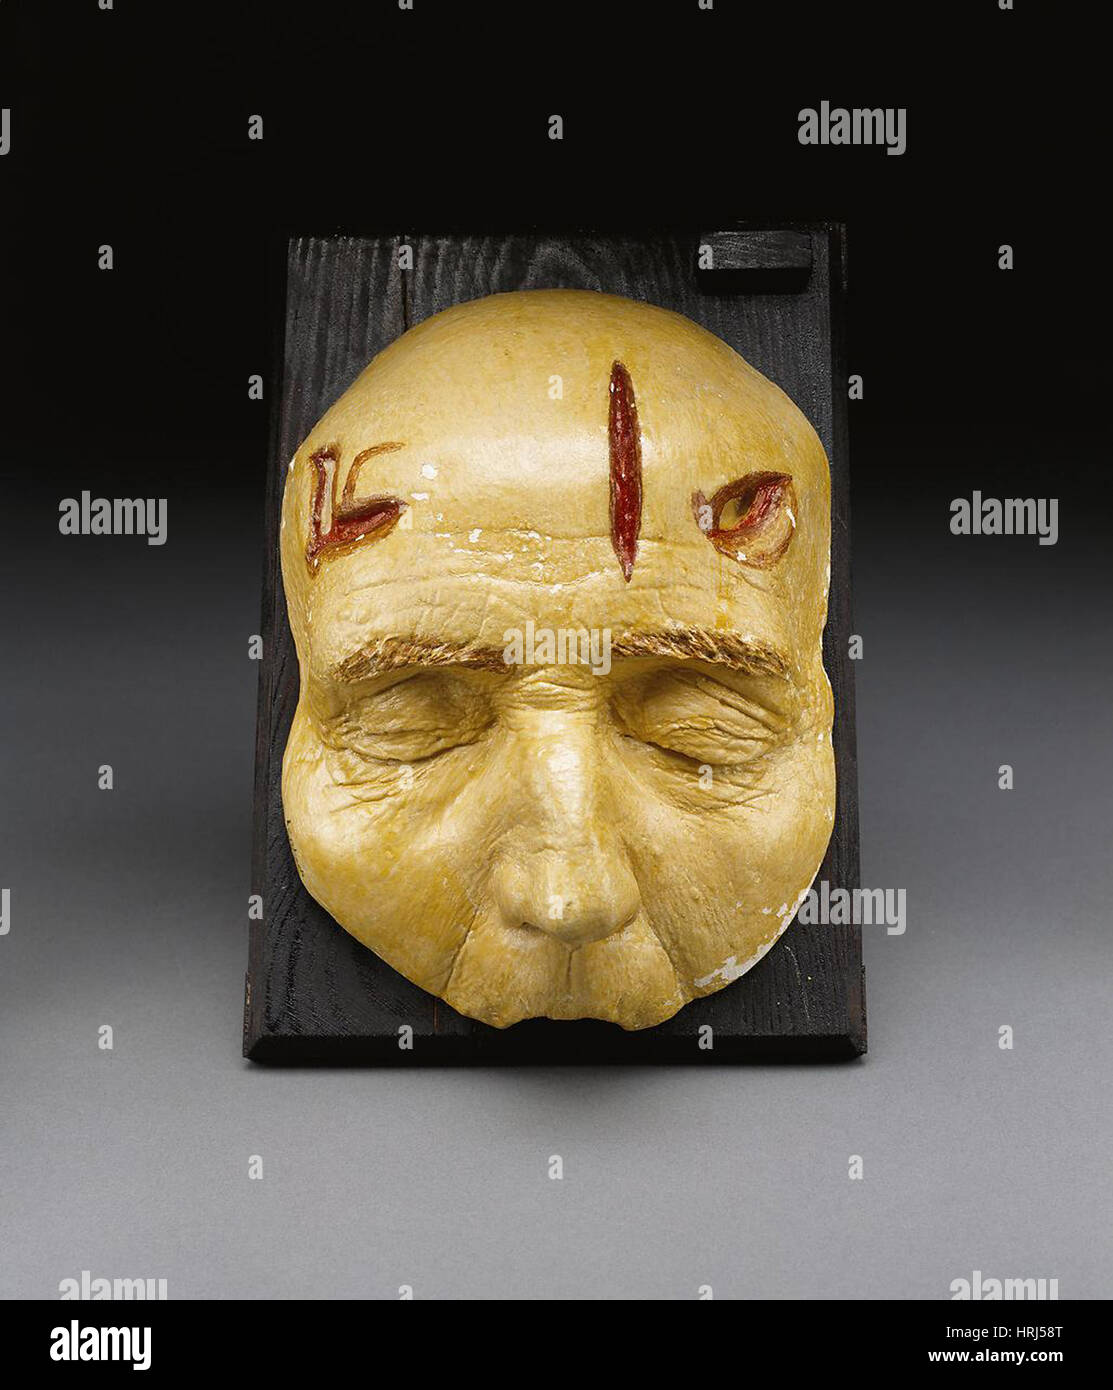 Death Mask, Incision, Laceration and Stab Wounds, 1965 - Stock Image